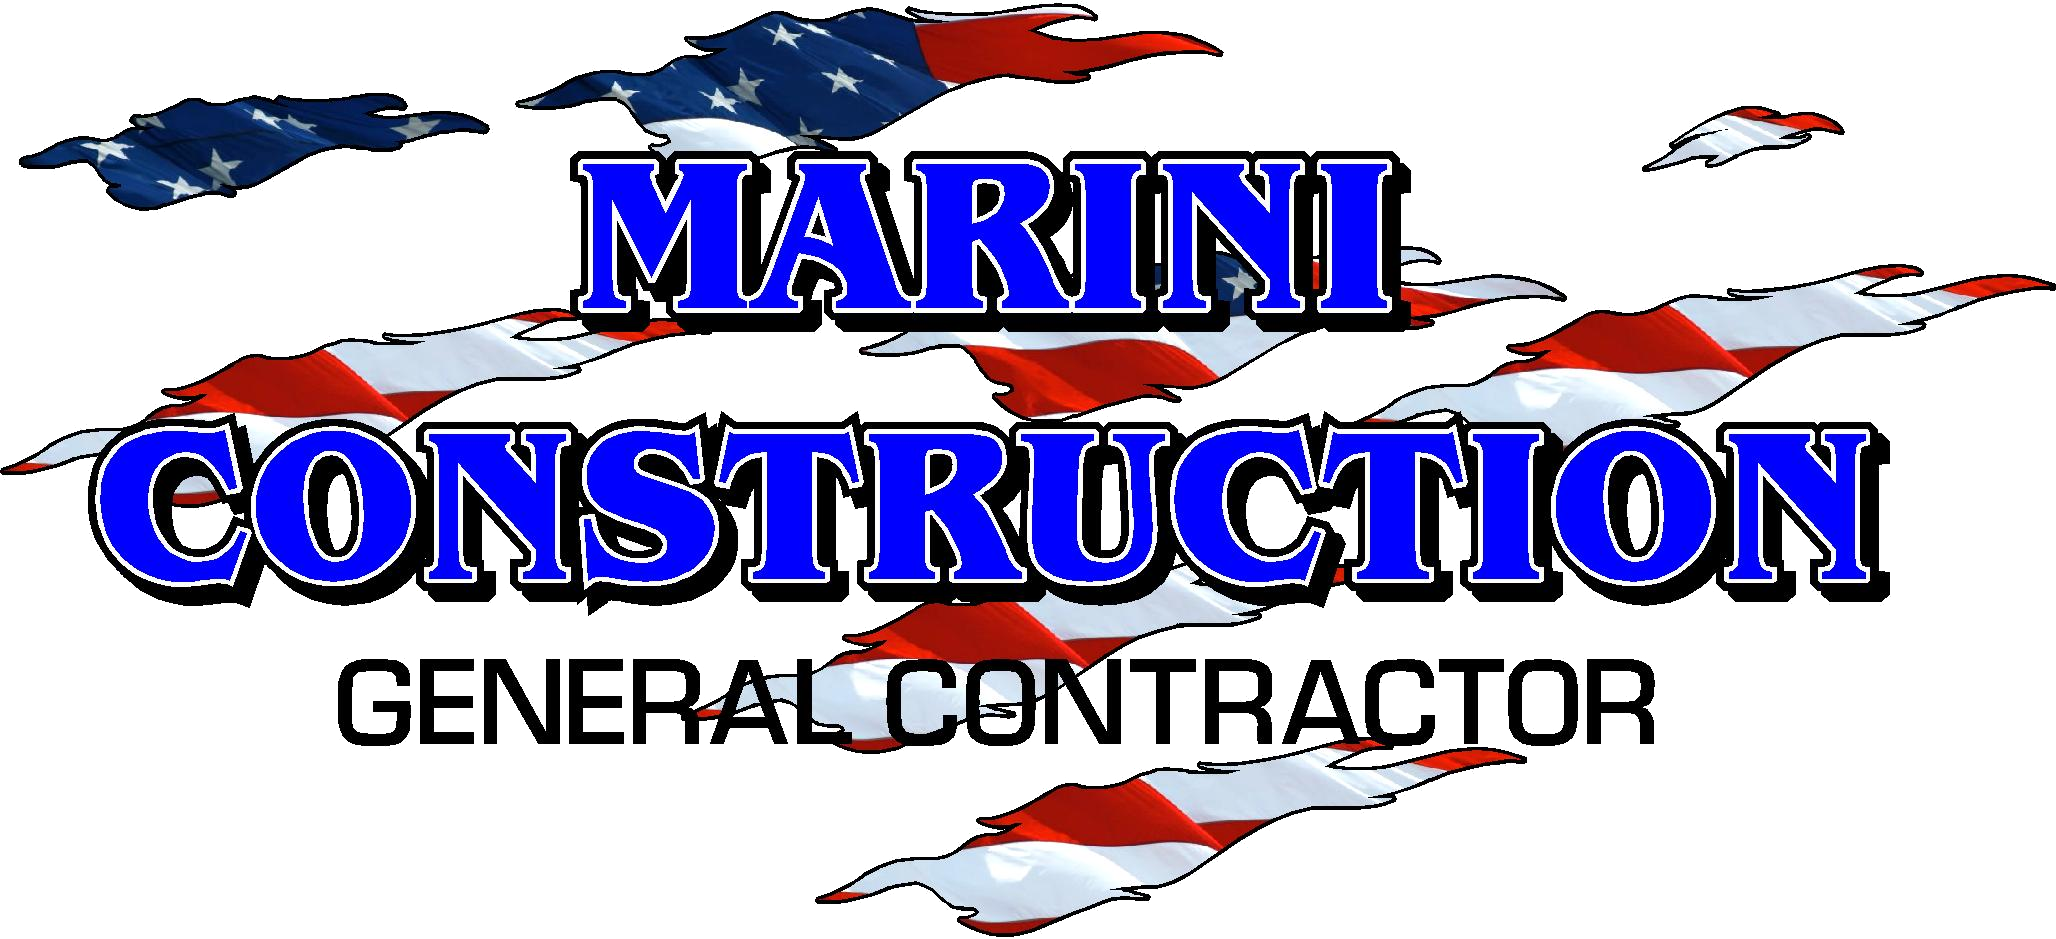 Marini Construction